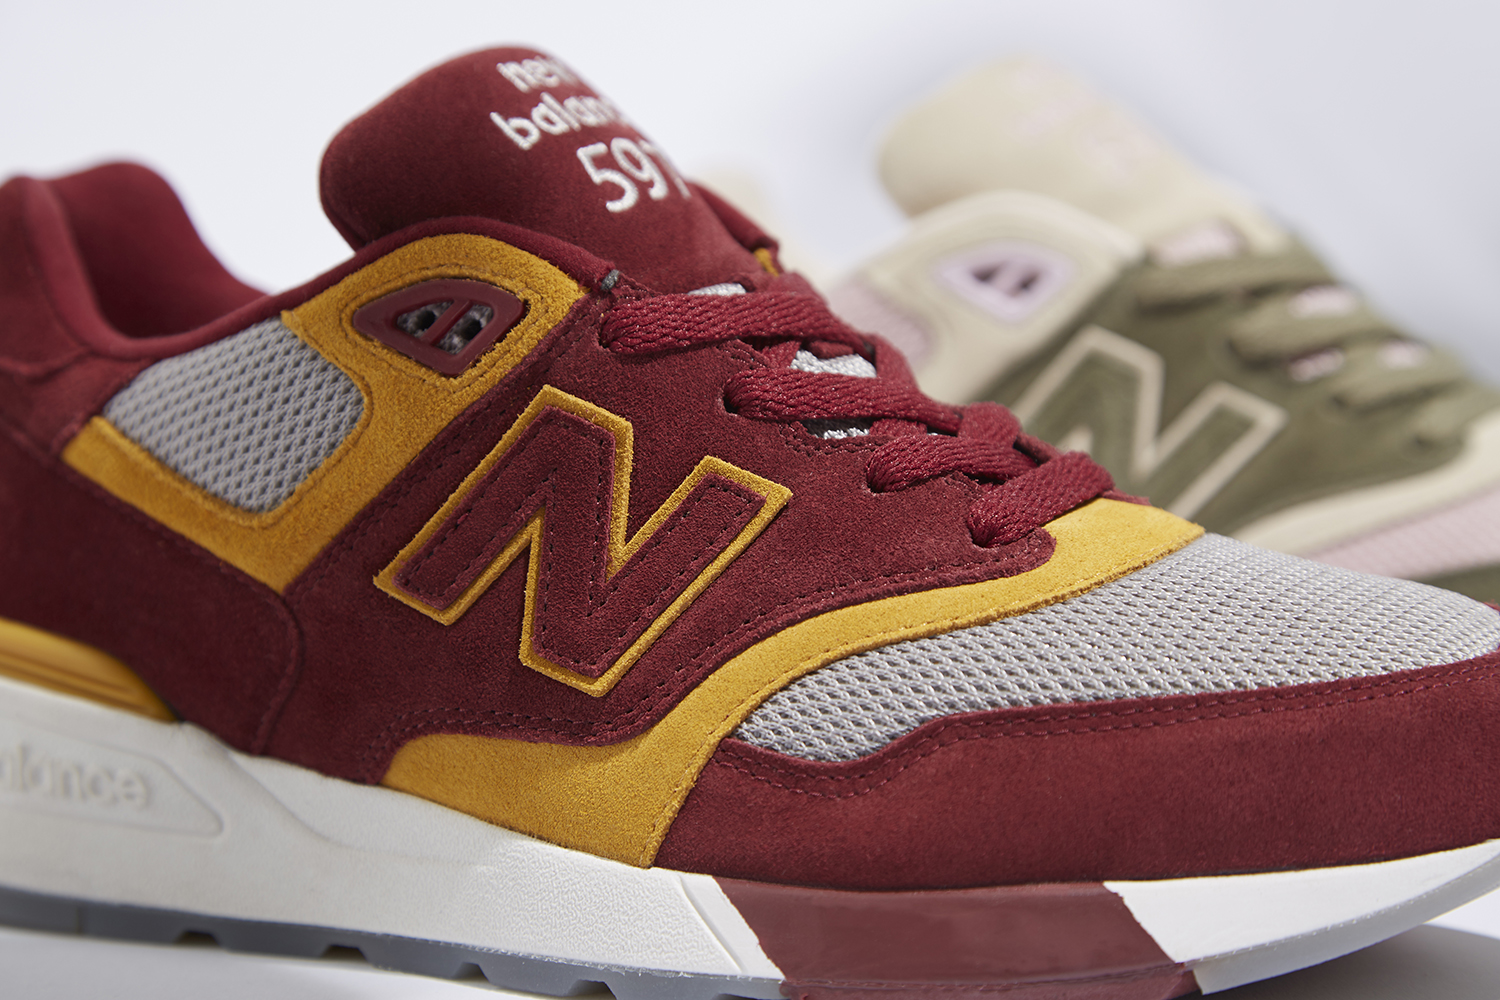 competitive price d3272 6ac16 New Balance 597 'Neotropic' - size? Exclusive - size? blog